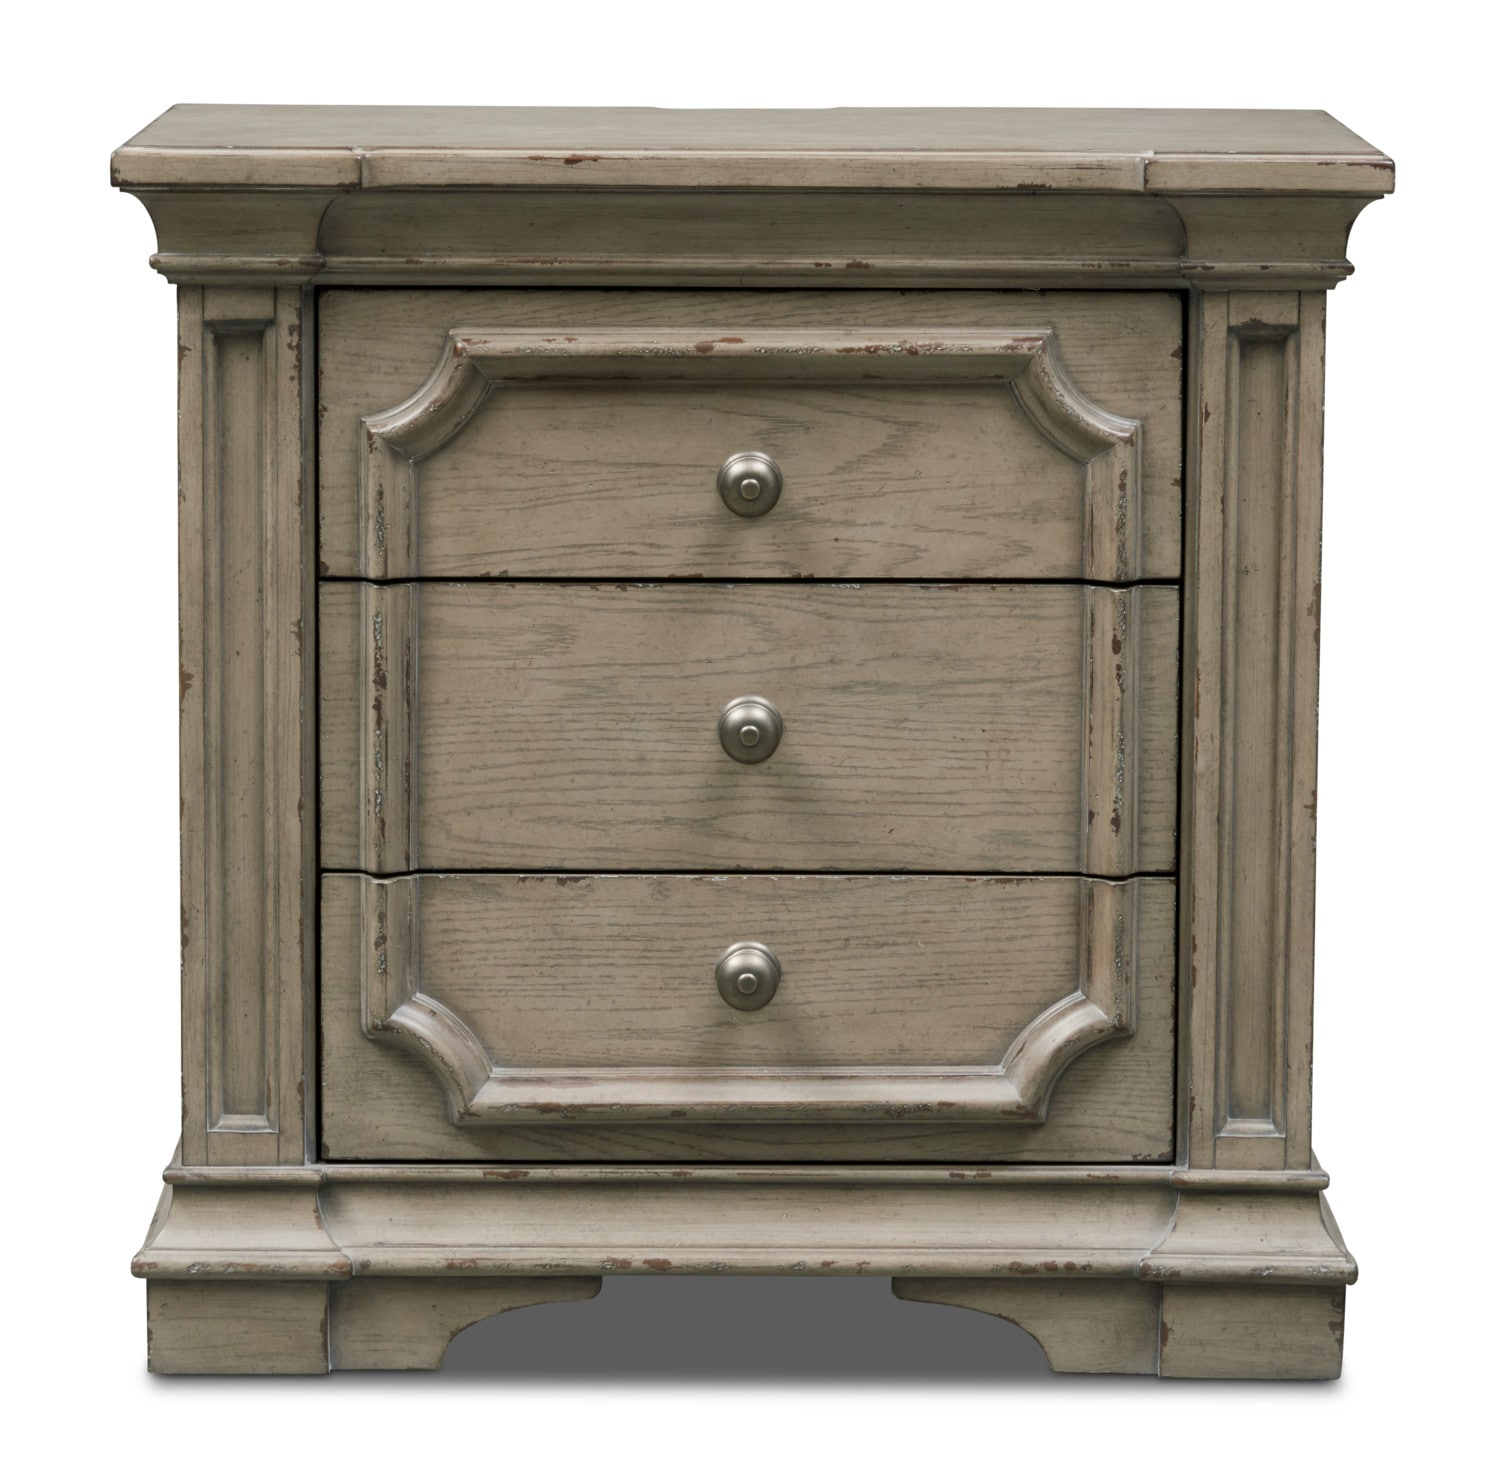 American Signature Furniture Financing Minimum Credit Score: Chatelet Nightstand - Antique Taupe